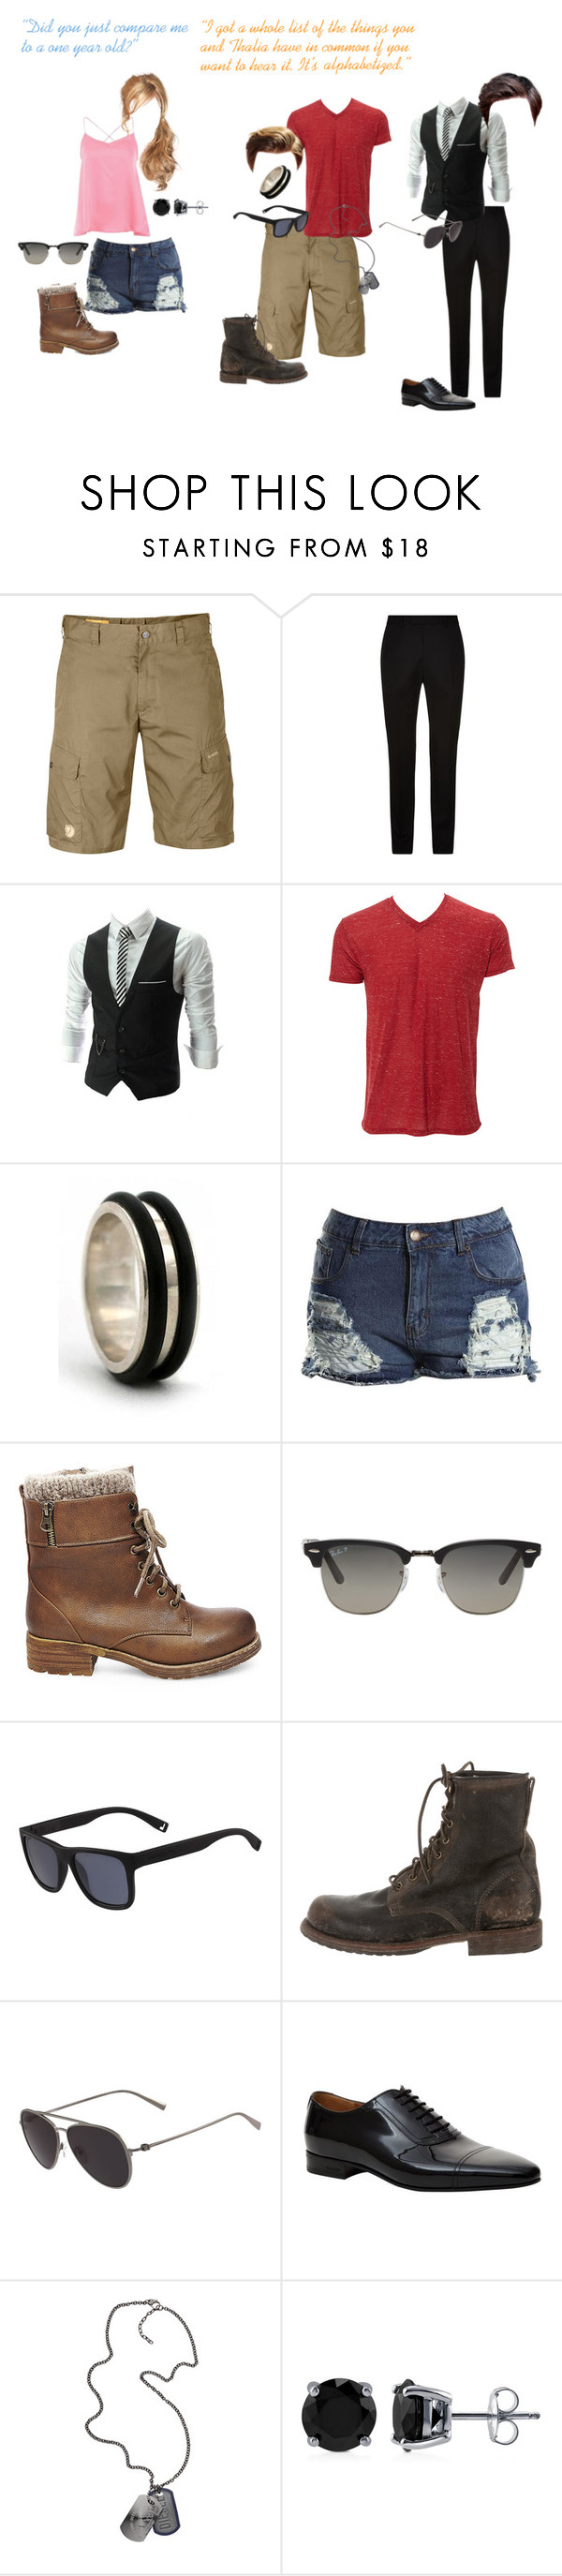 """""""7."""" by secretly-a-fangirl ❤ liked on Polyvore featuring Fjällräven, Sandro, Simplex Apparel, NOVICA, Boohoo, Steve Madden, Ray-Ban, Lacoste, Frye and Salvatore Ferragamo"""